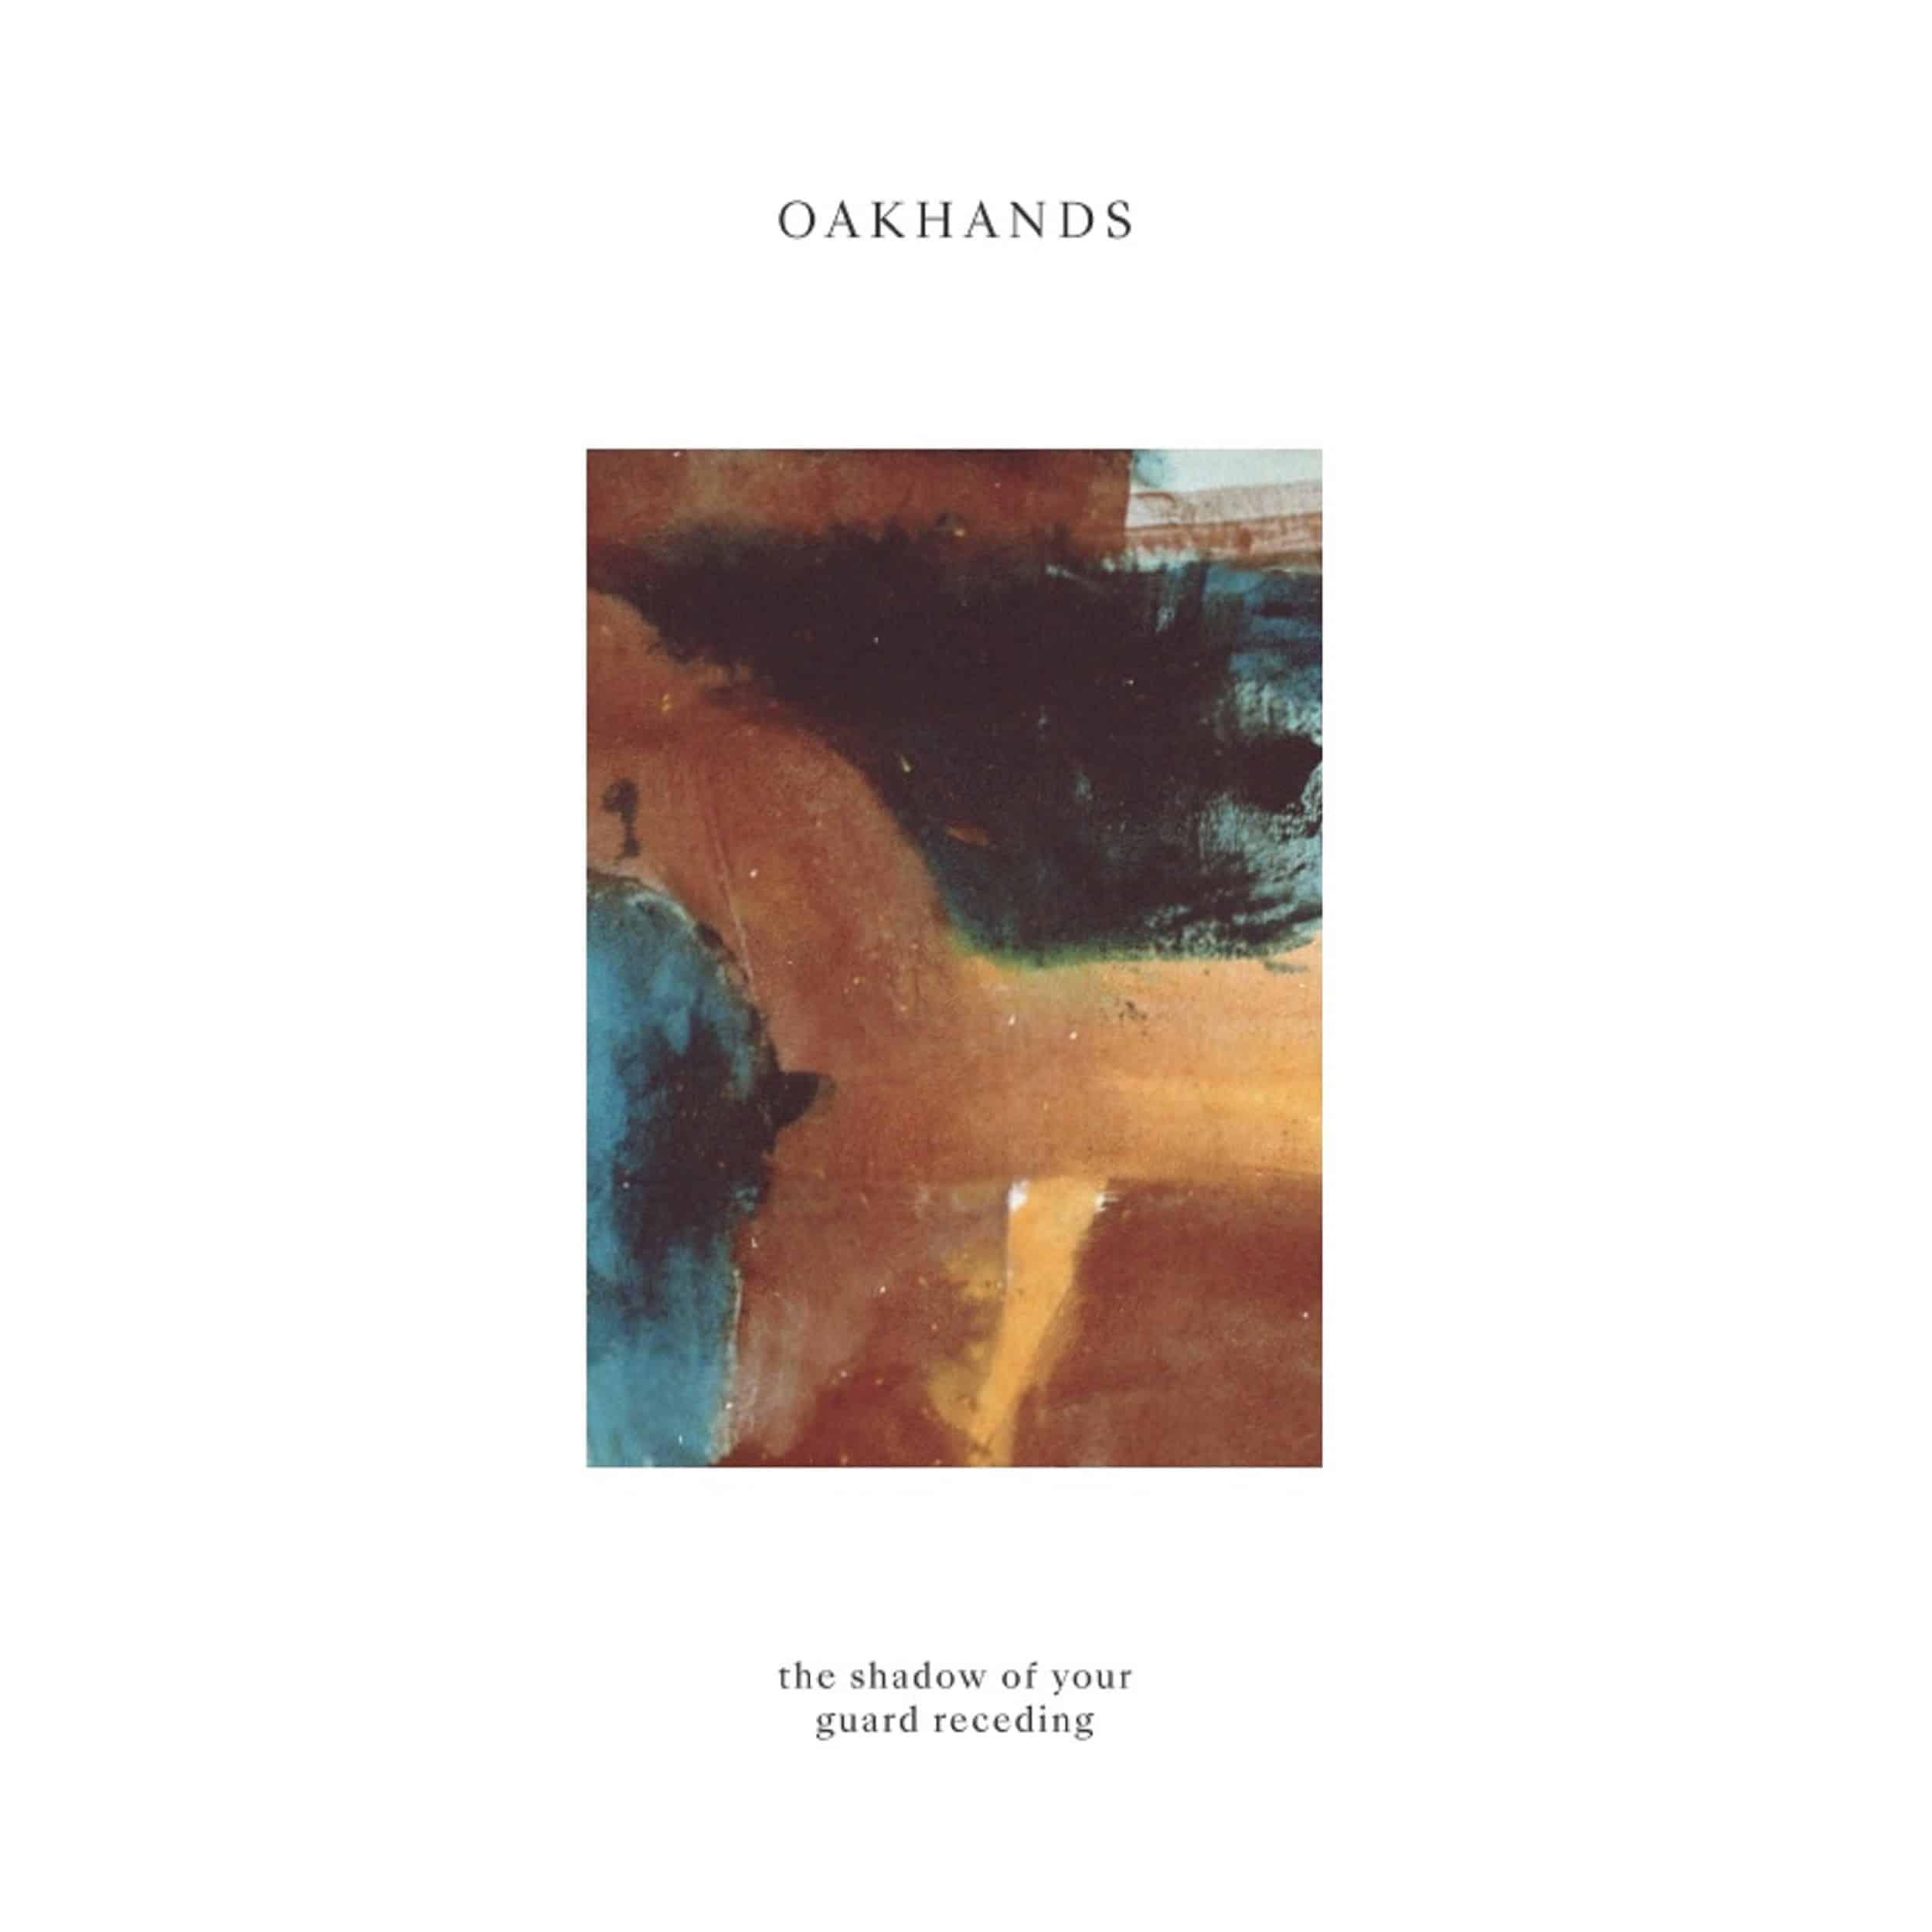 Oakhands - The Shadow of Your Guard Receeding